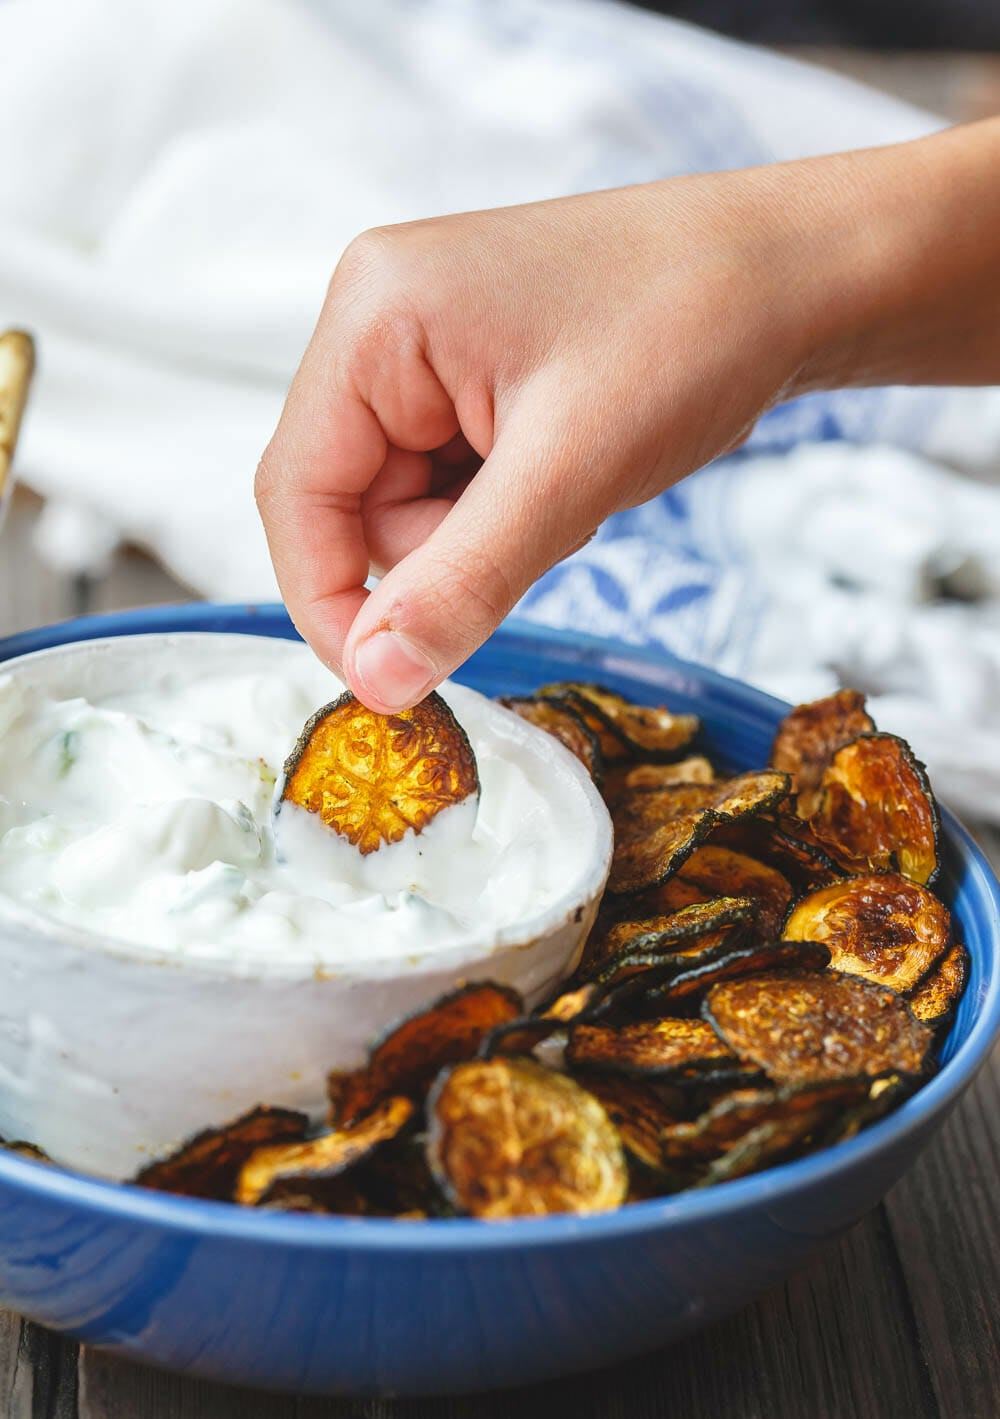 Baked from start to finish, you'll be seriously wondering how these veggie chips manage to get so crispy. Get the recipe here.